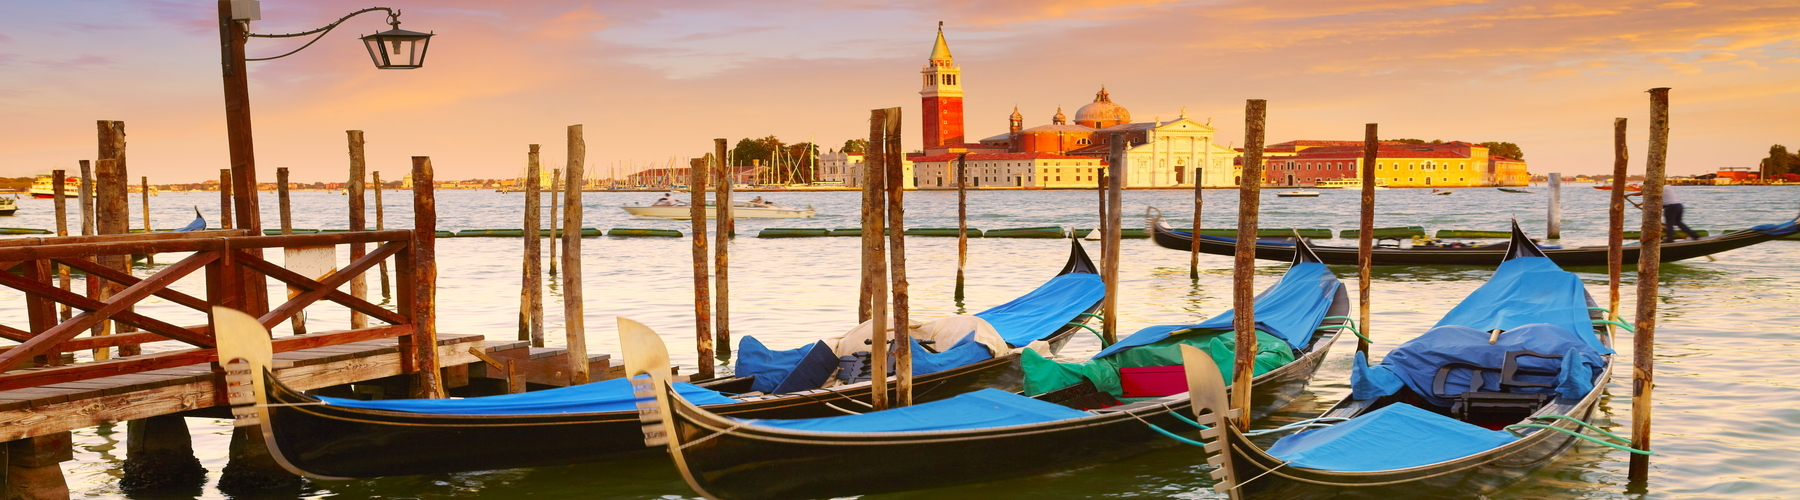 Tailor made holidays to Venice